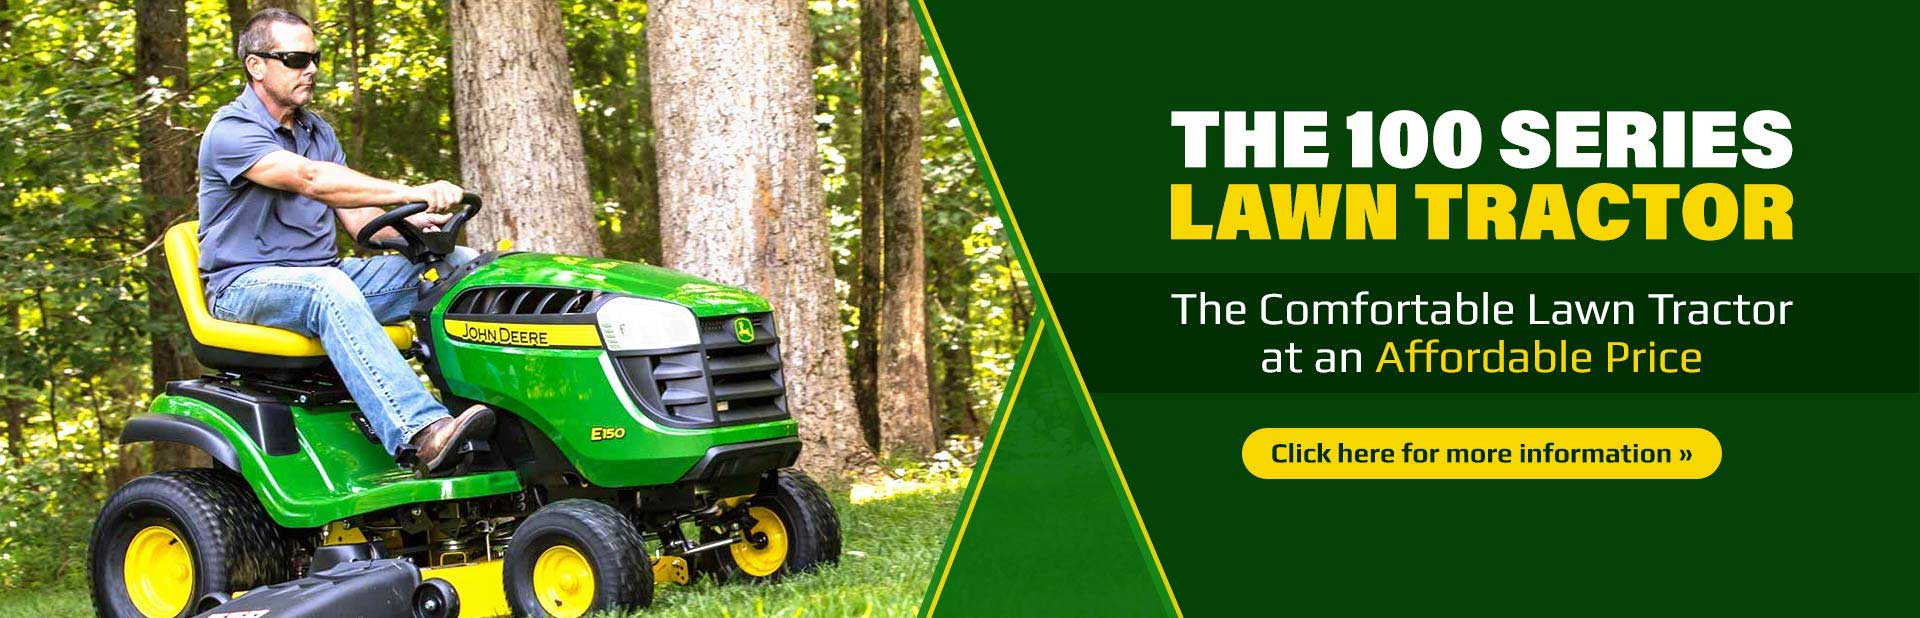 The John Deere 100 Series Lawn Tractor: Click here for more information.